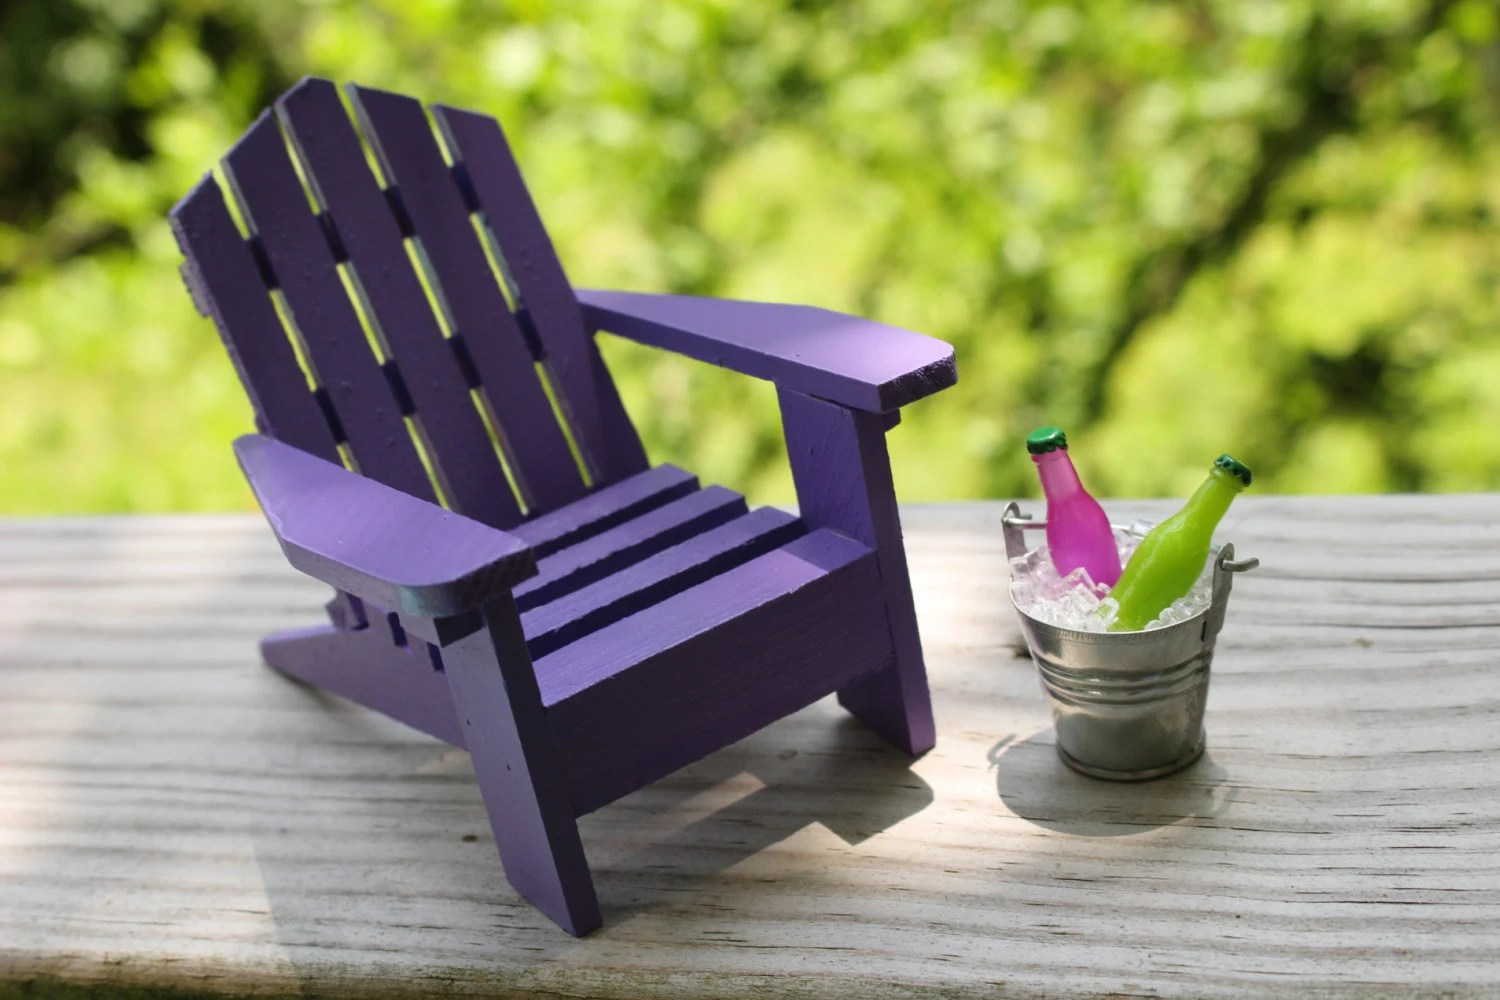 Mini Adirondack Chairs 1 Miniature Adirondack Chair Beach Chair Tin Bucket Ice